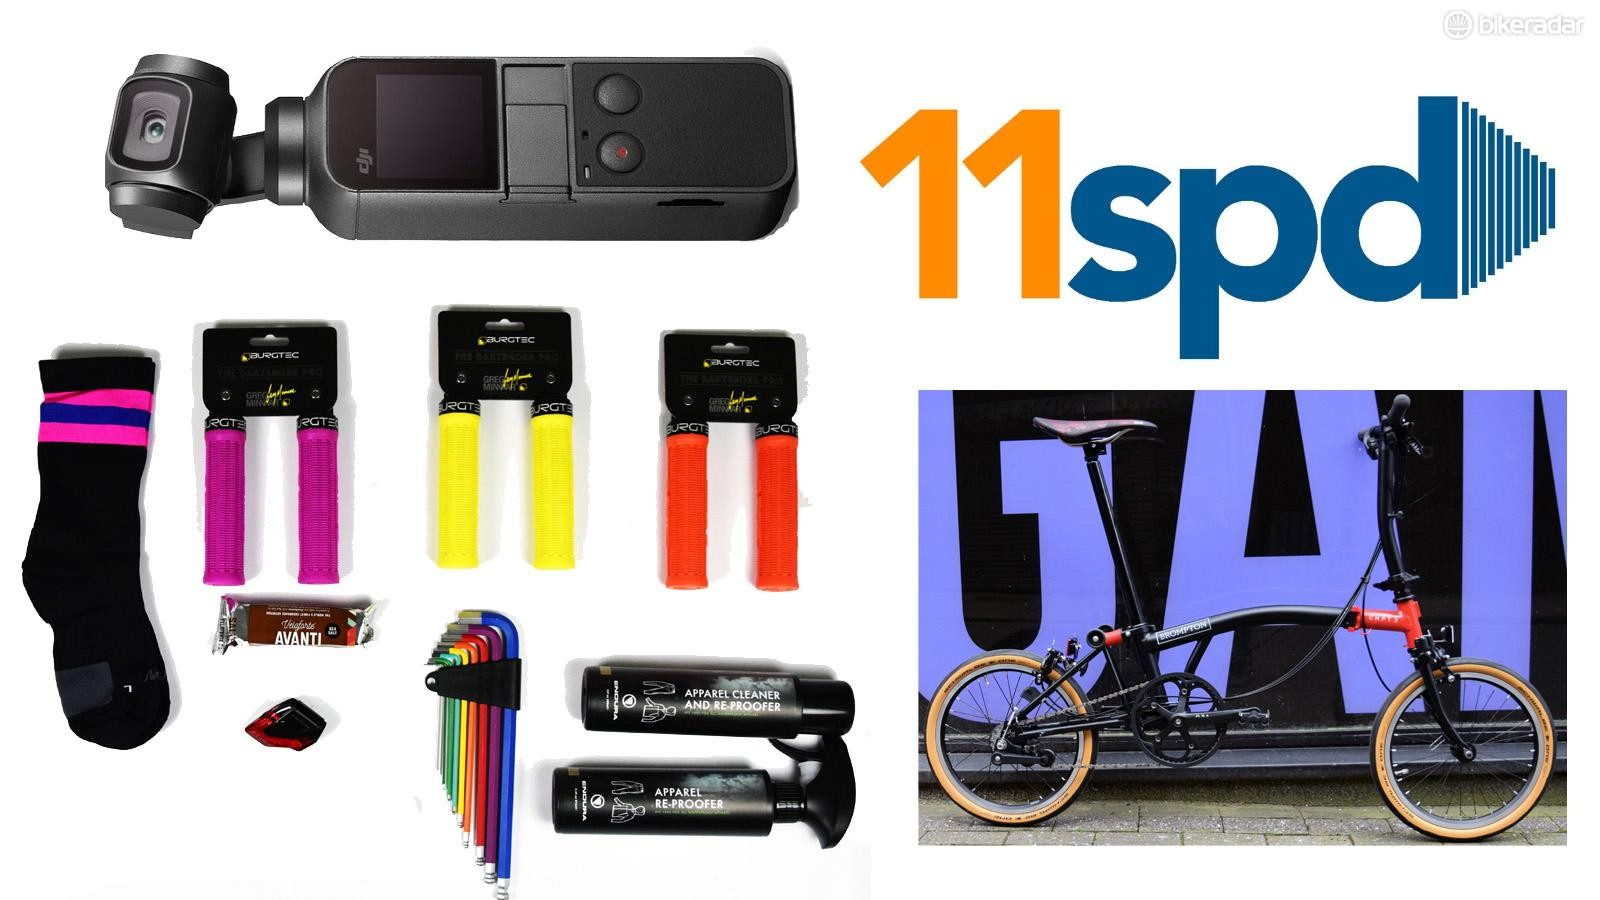 Flat lay of new bike products on a white background with the blue and yellow '11 spd' logo in the top right corner